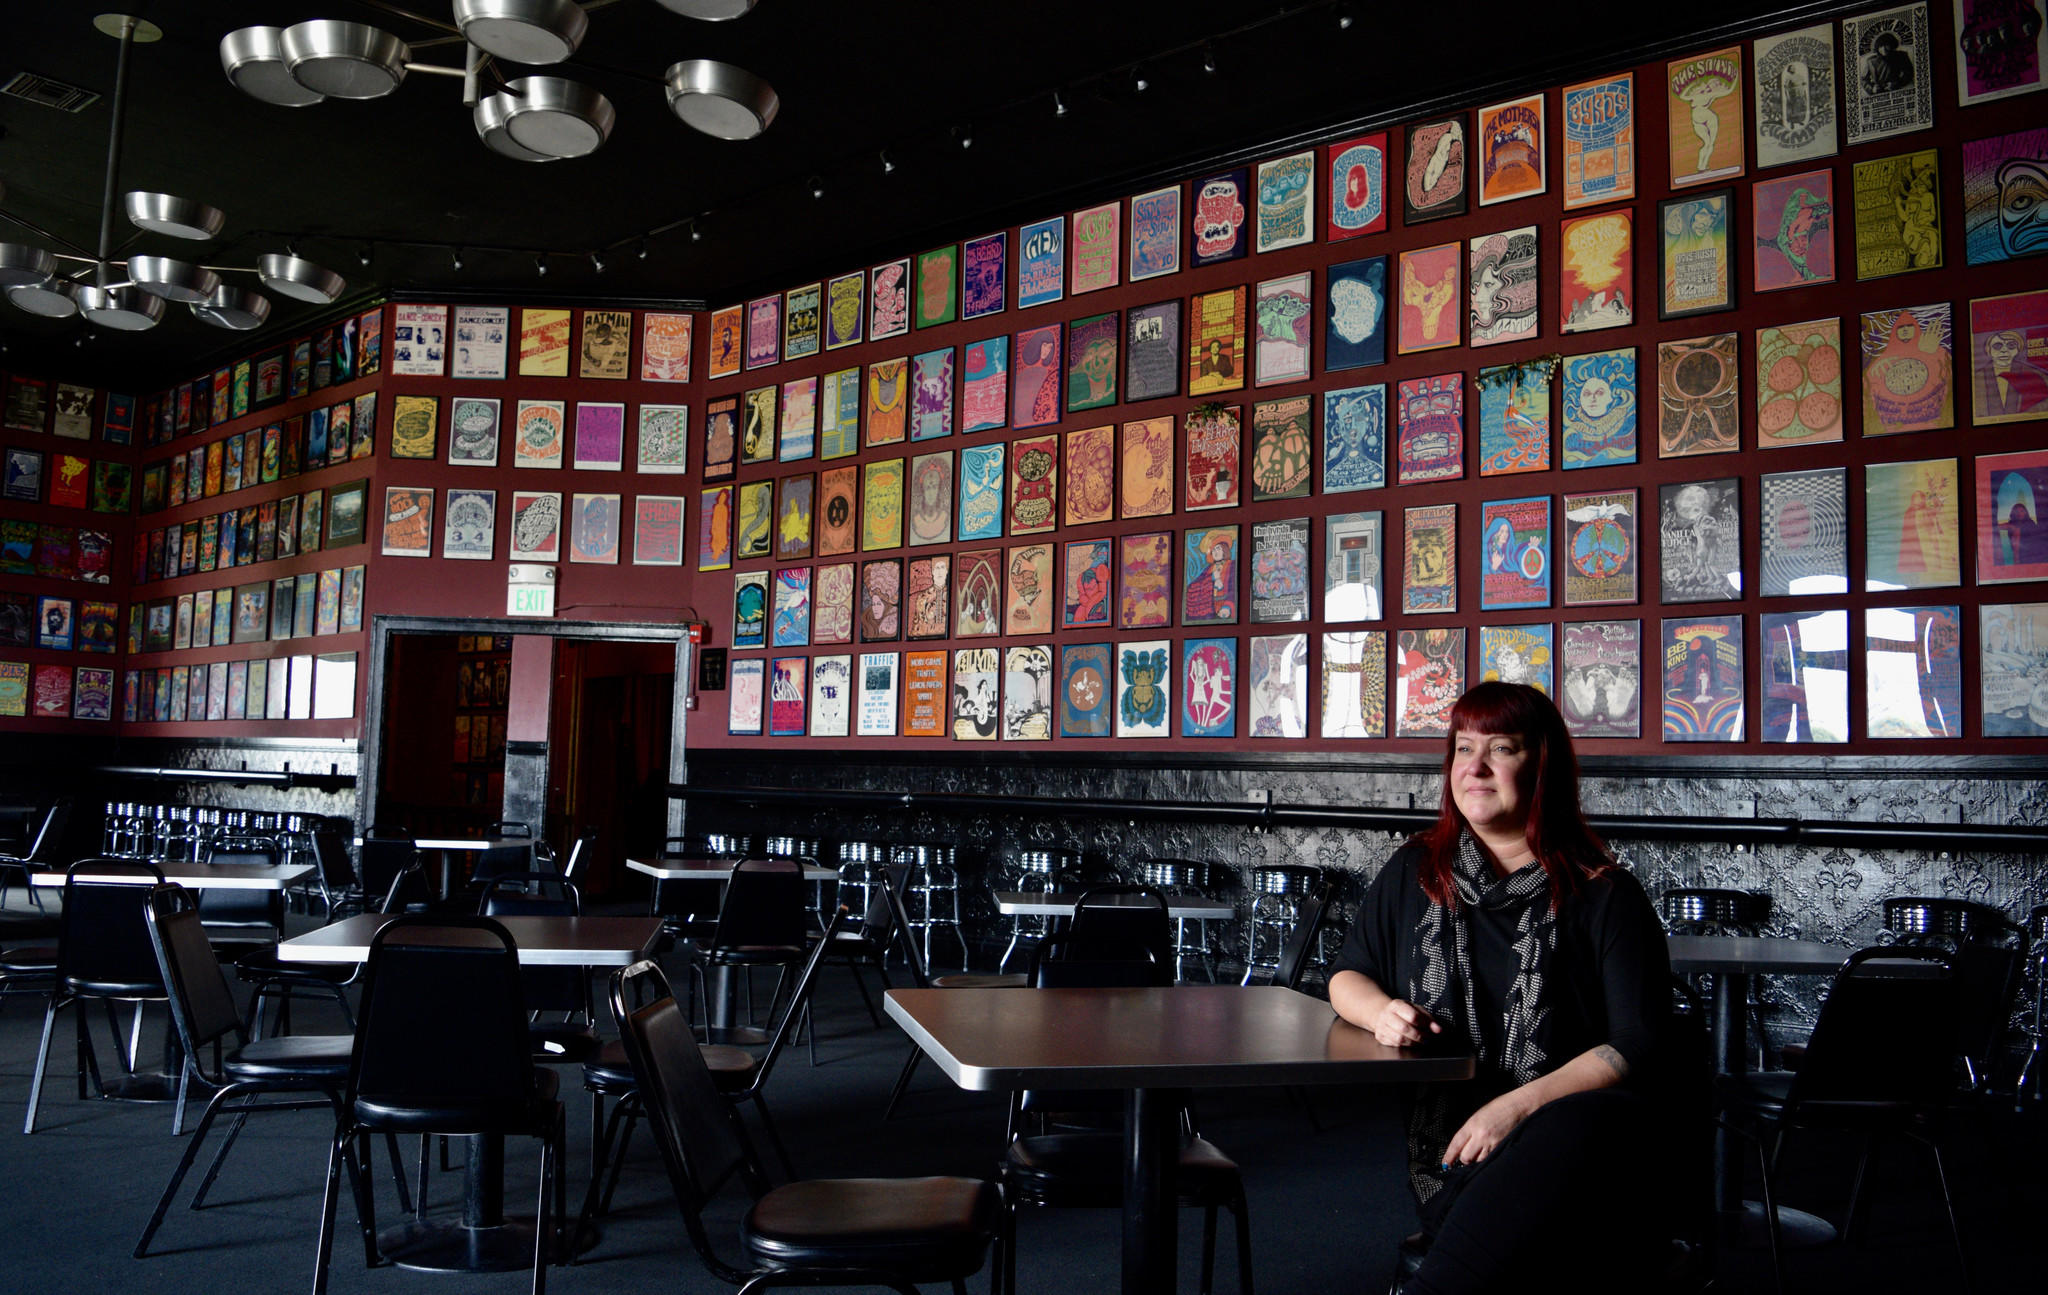 Amie Bailey-Knobler, general manager of the Fillmore in San Francisco, is shown in its Poster Room, where hundreds of concerts from over the decades are represented on the walls.